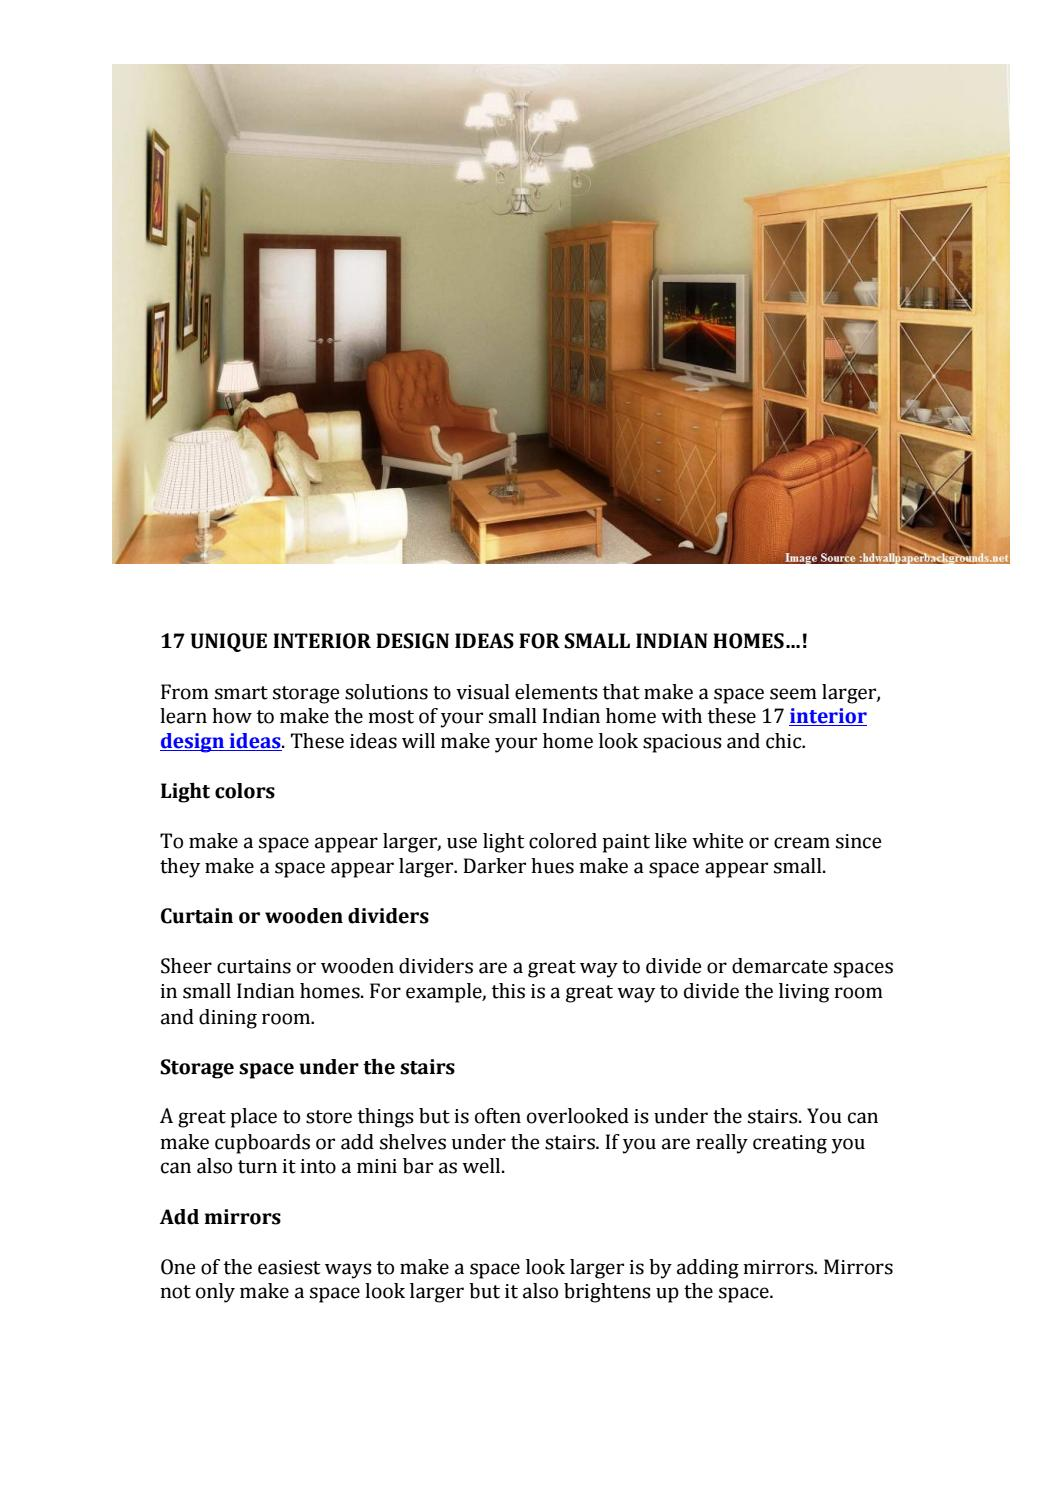 17 Unique Interior Design Ideas For Small Indian Homes By Idprop Issuu